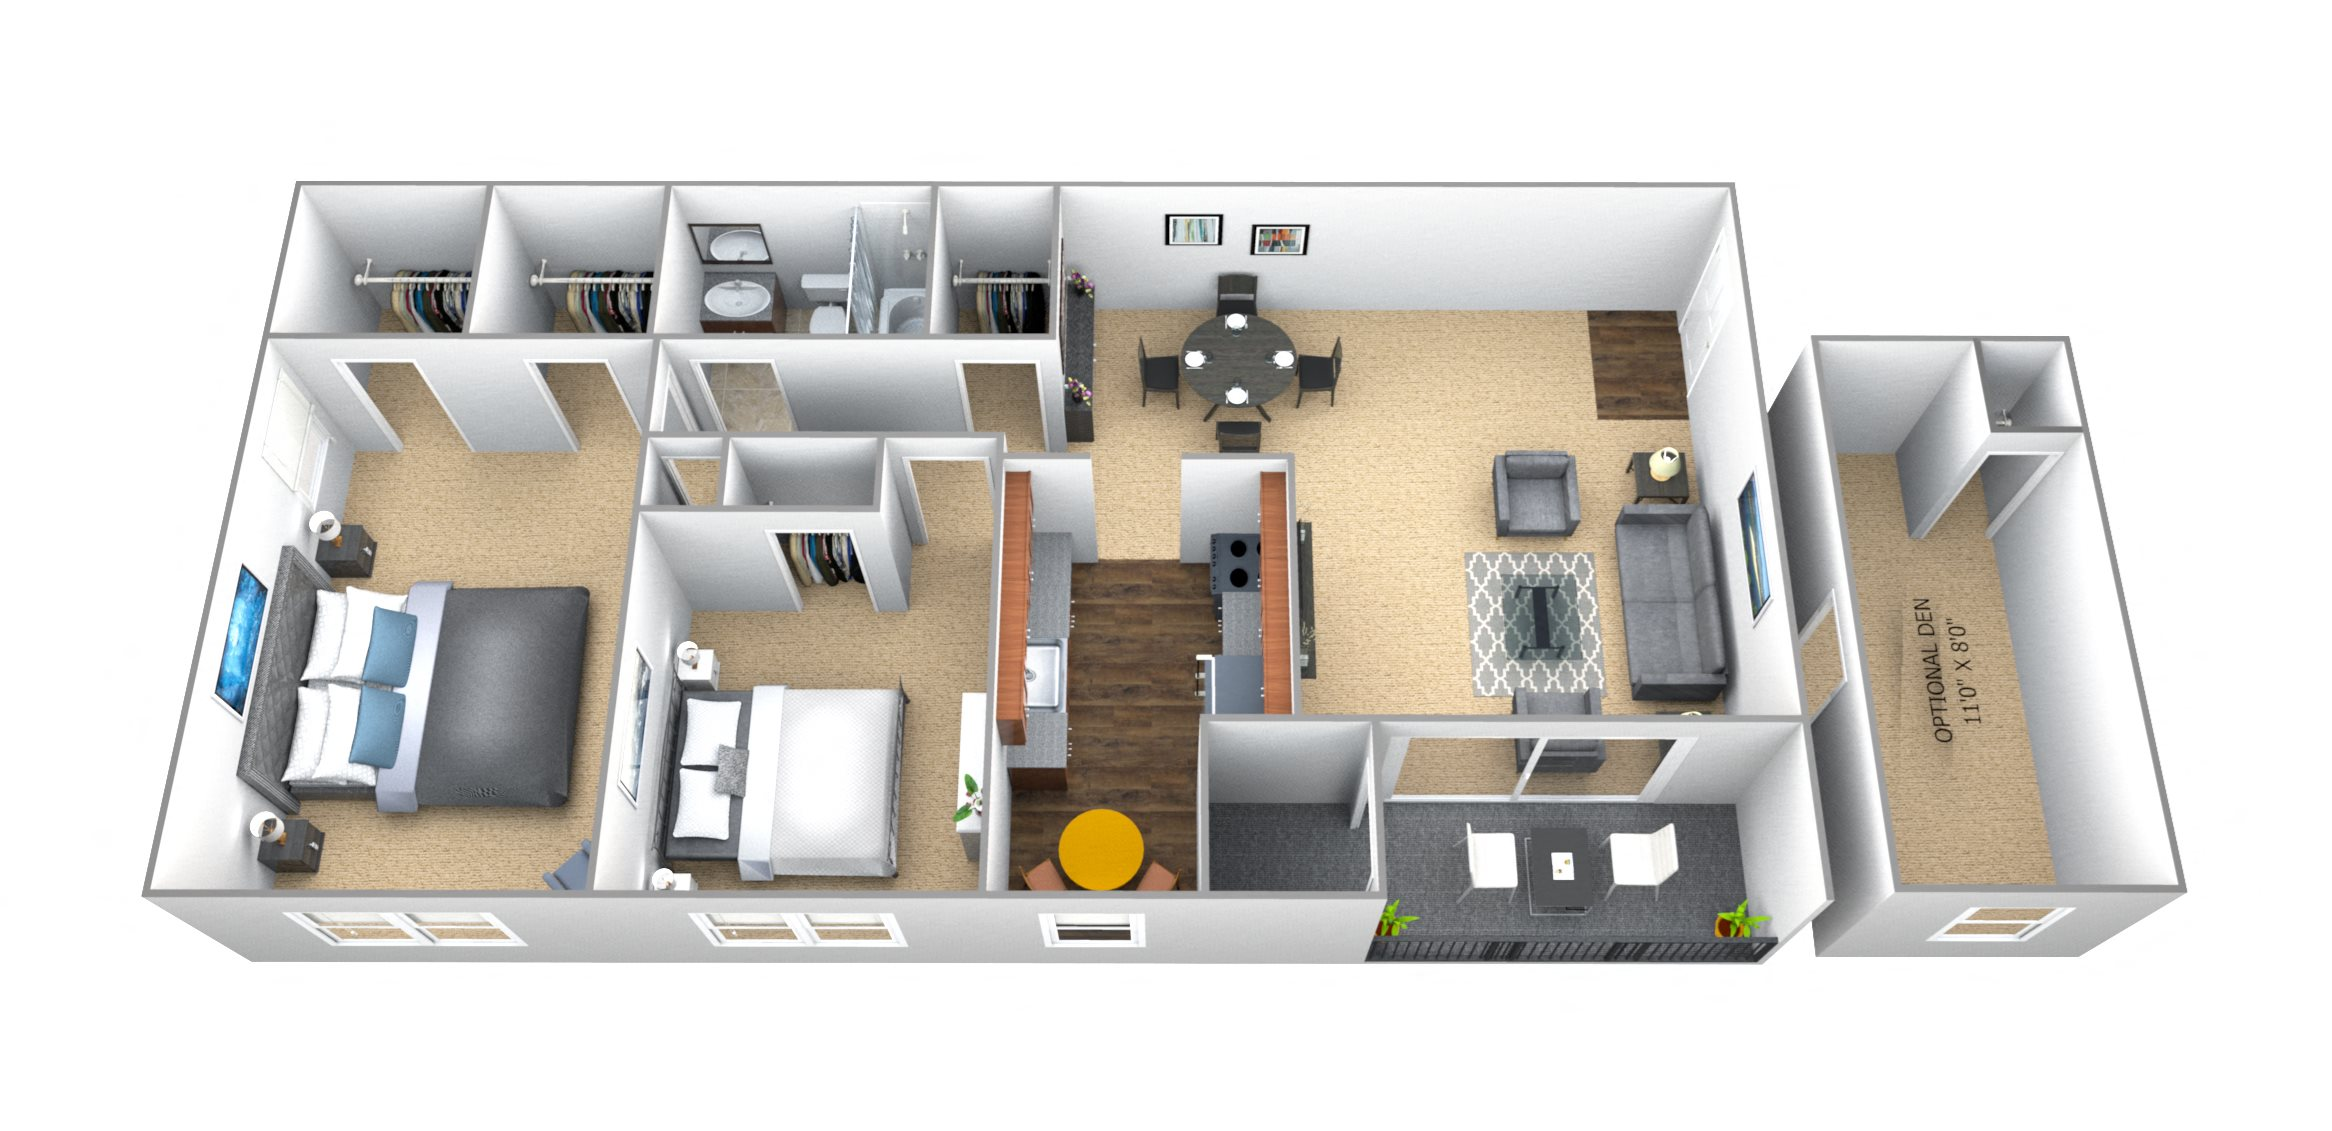 Floor Plans of Seminary Roundtop Apartments in Lutherville, MD